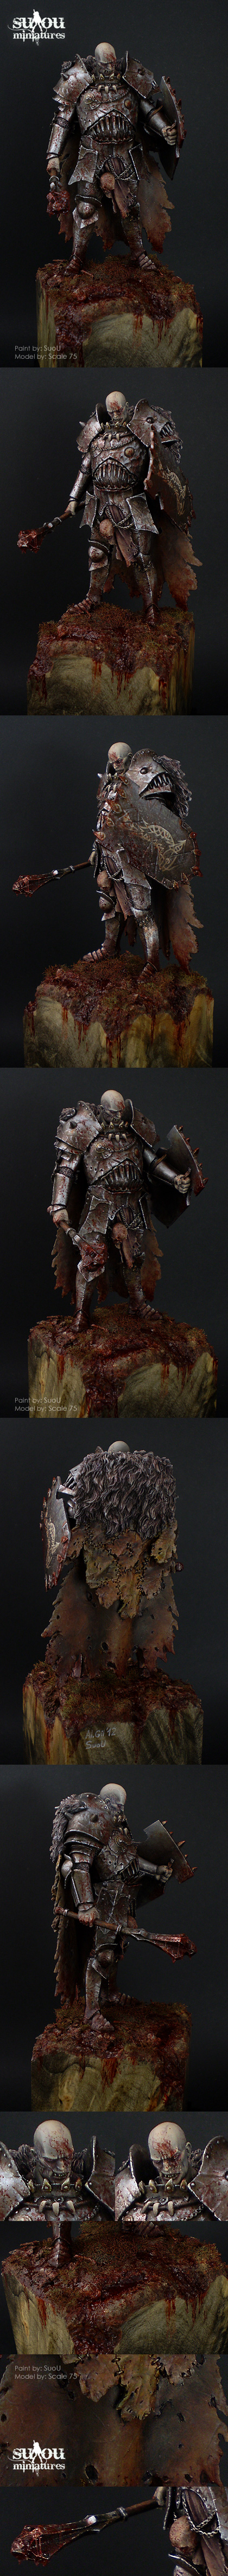 Abyssal Warlord - Scale 75